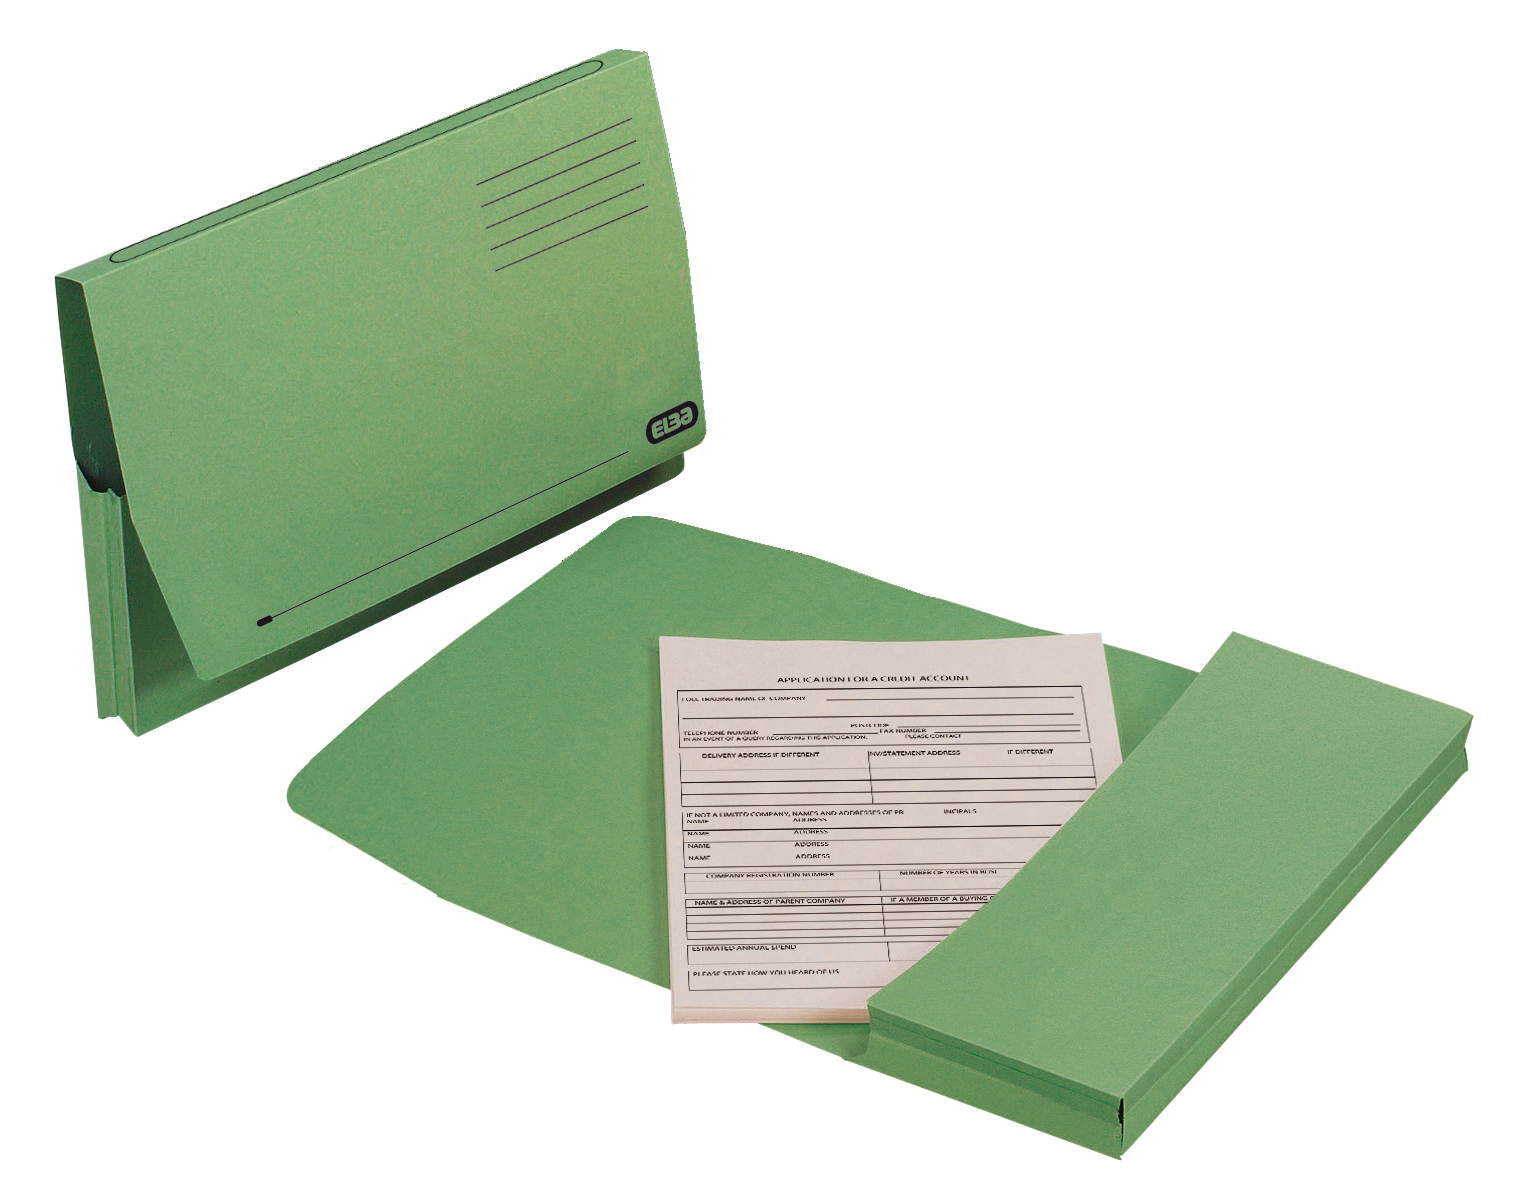 Elba Document Wallet Full Flap 260gsm Capacity 32mm Foolscap Green Ref 100090254 [Pack 50]